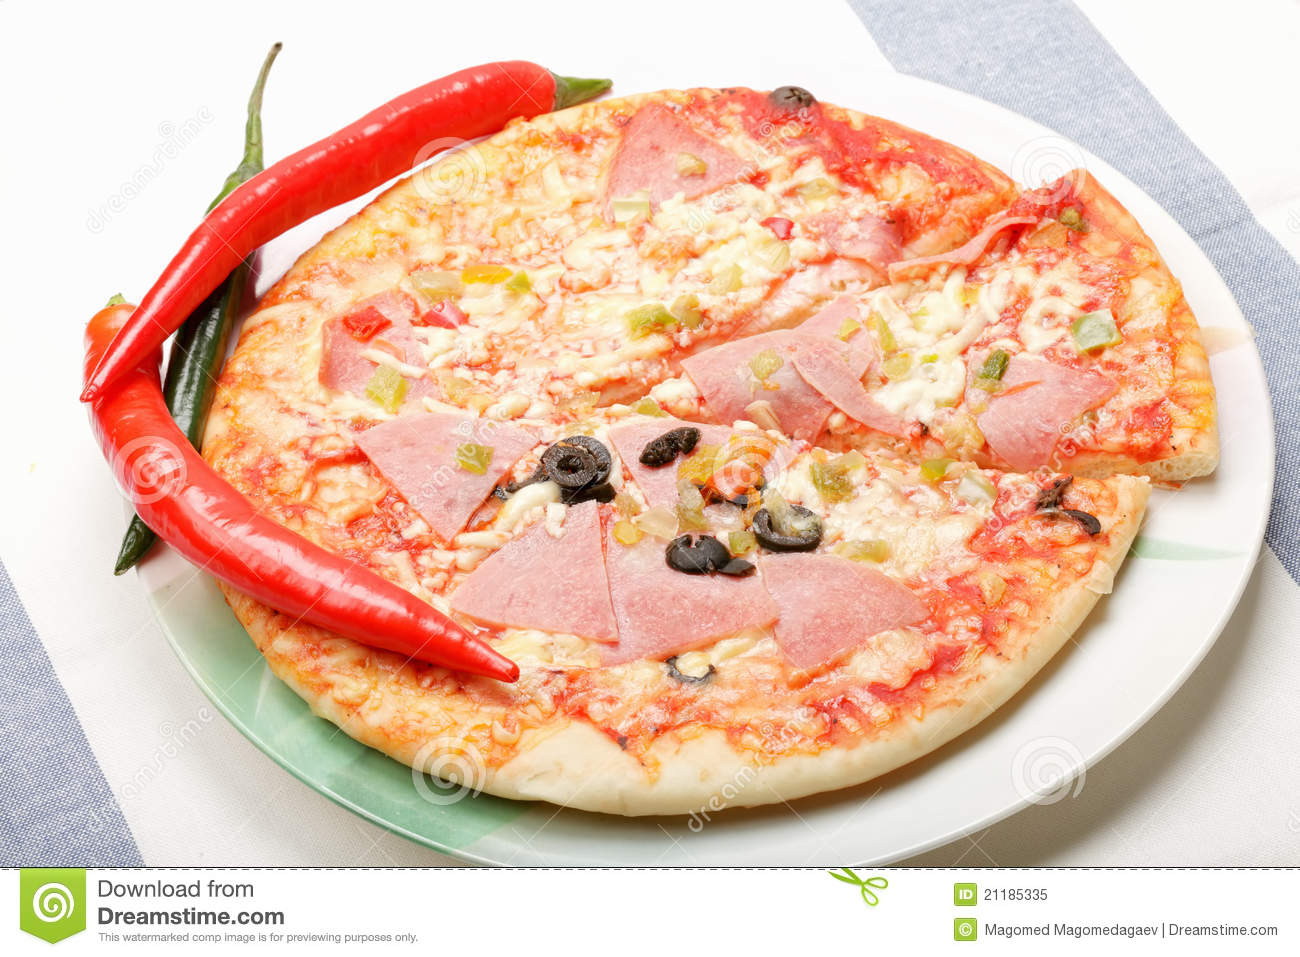 Pizza and chili on plate